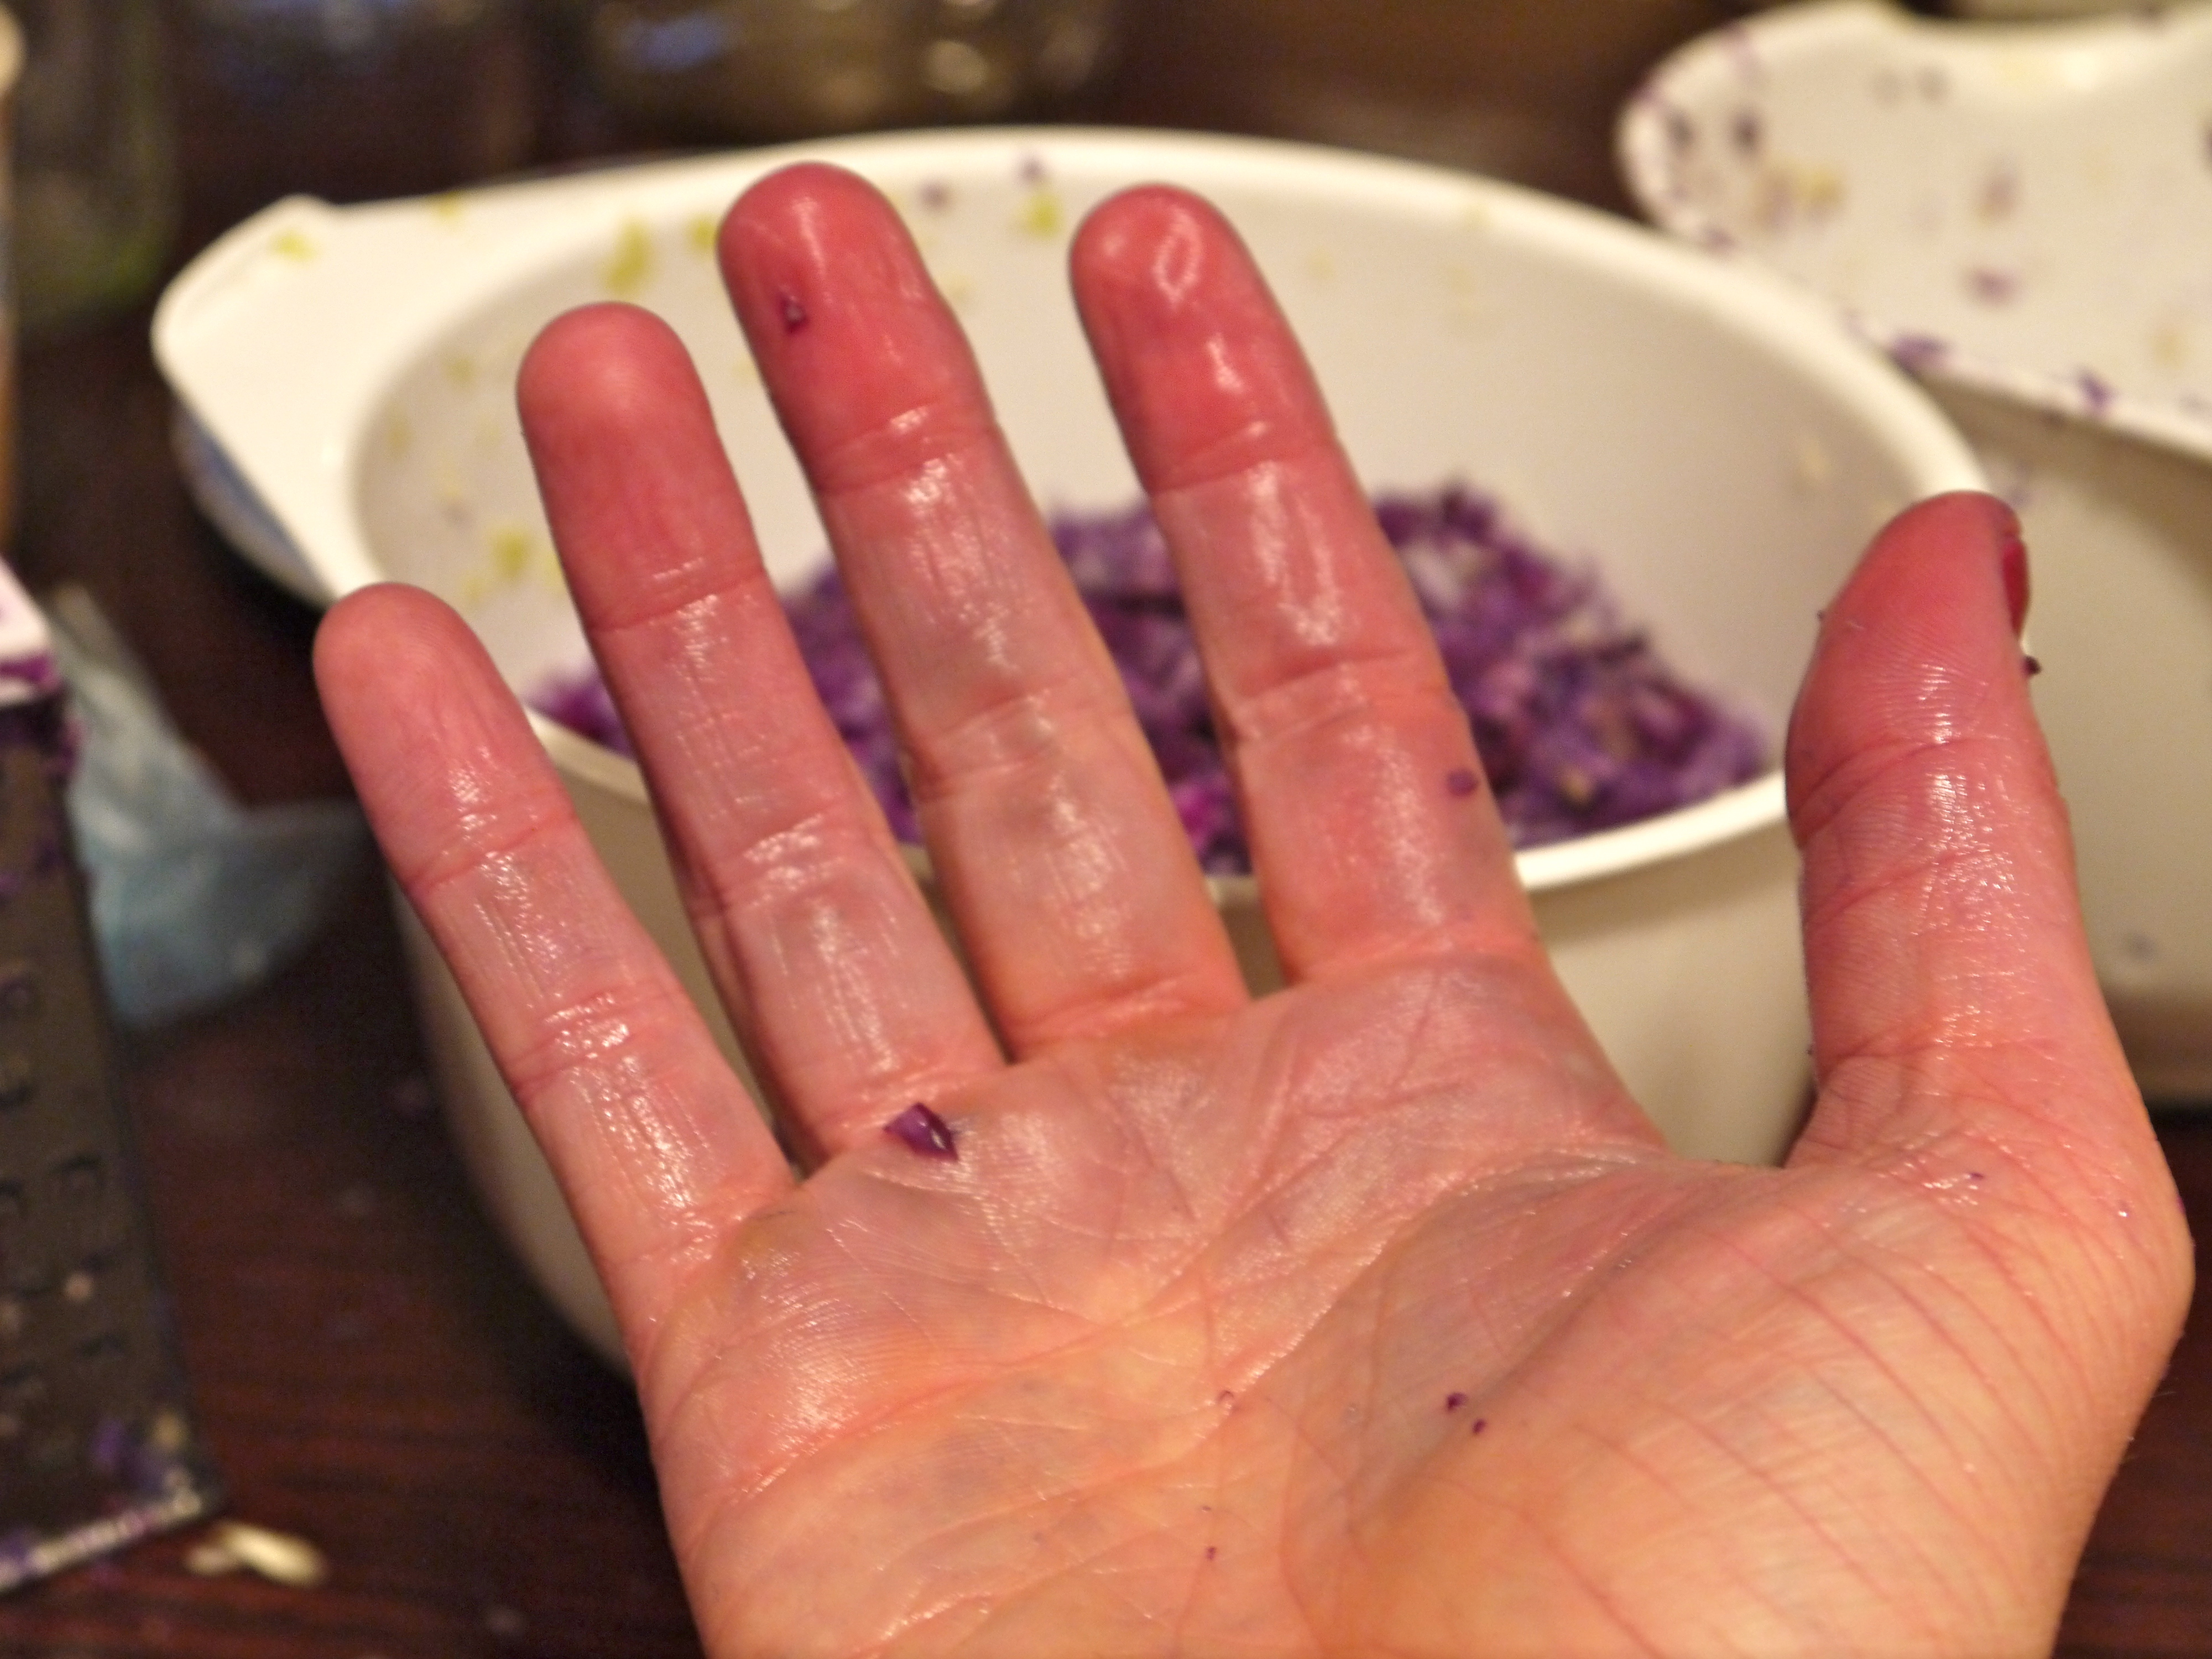 Just the beginning of the stained hands...